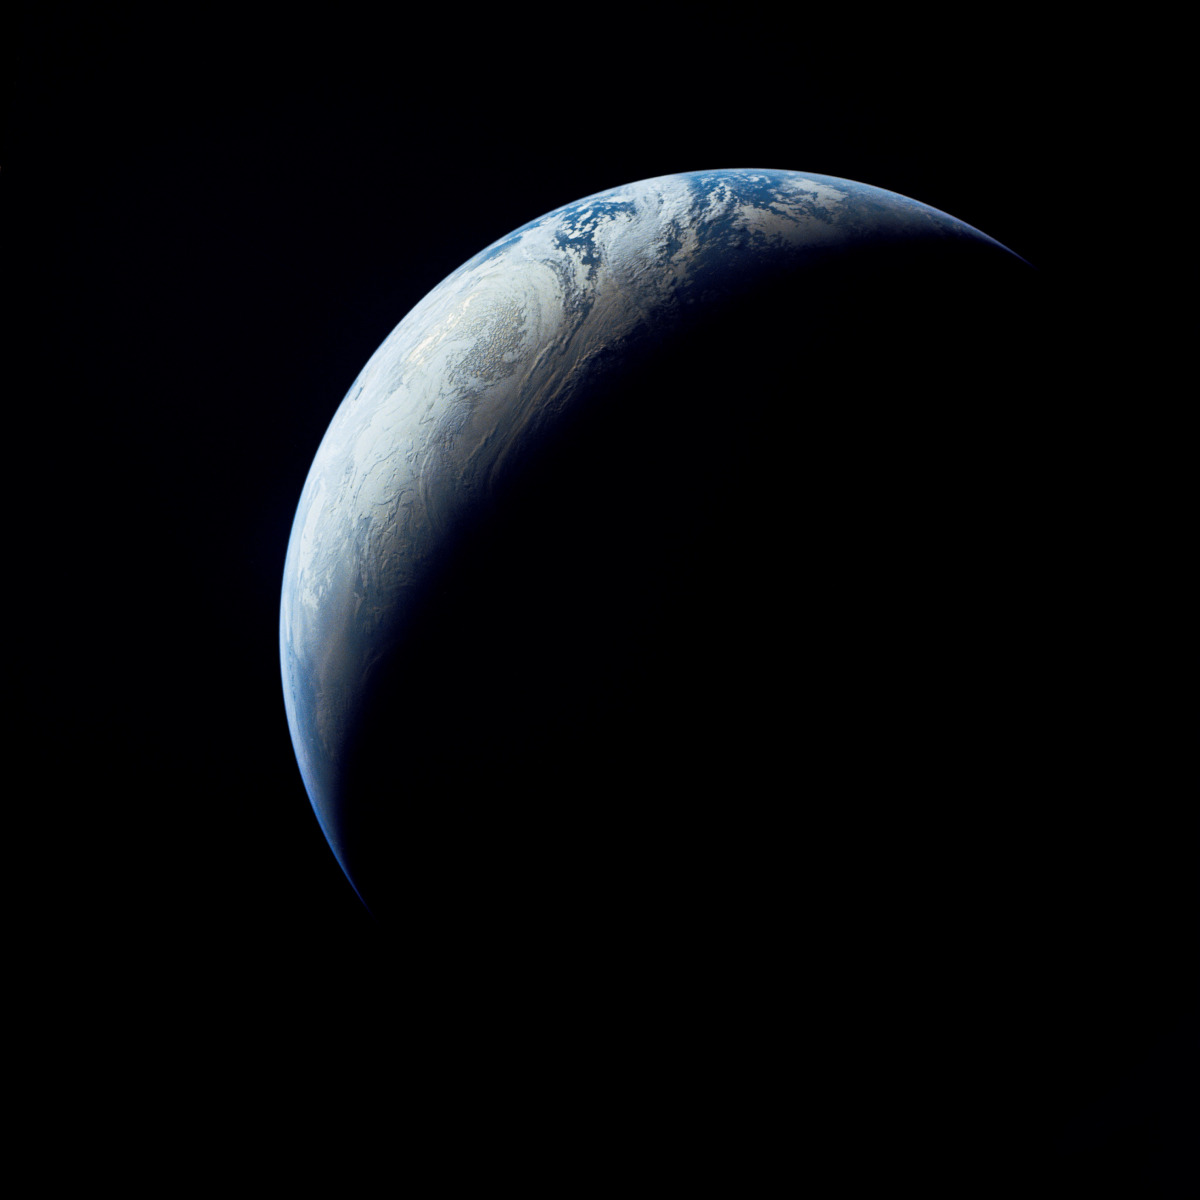 A crescent of Earth as seen from the unmanned Apollo 4 spacecraft in 1969